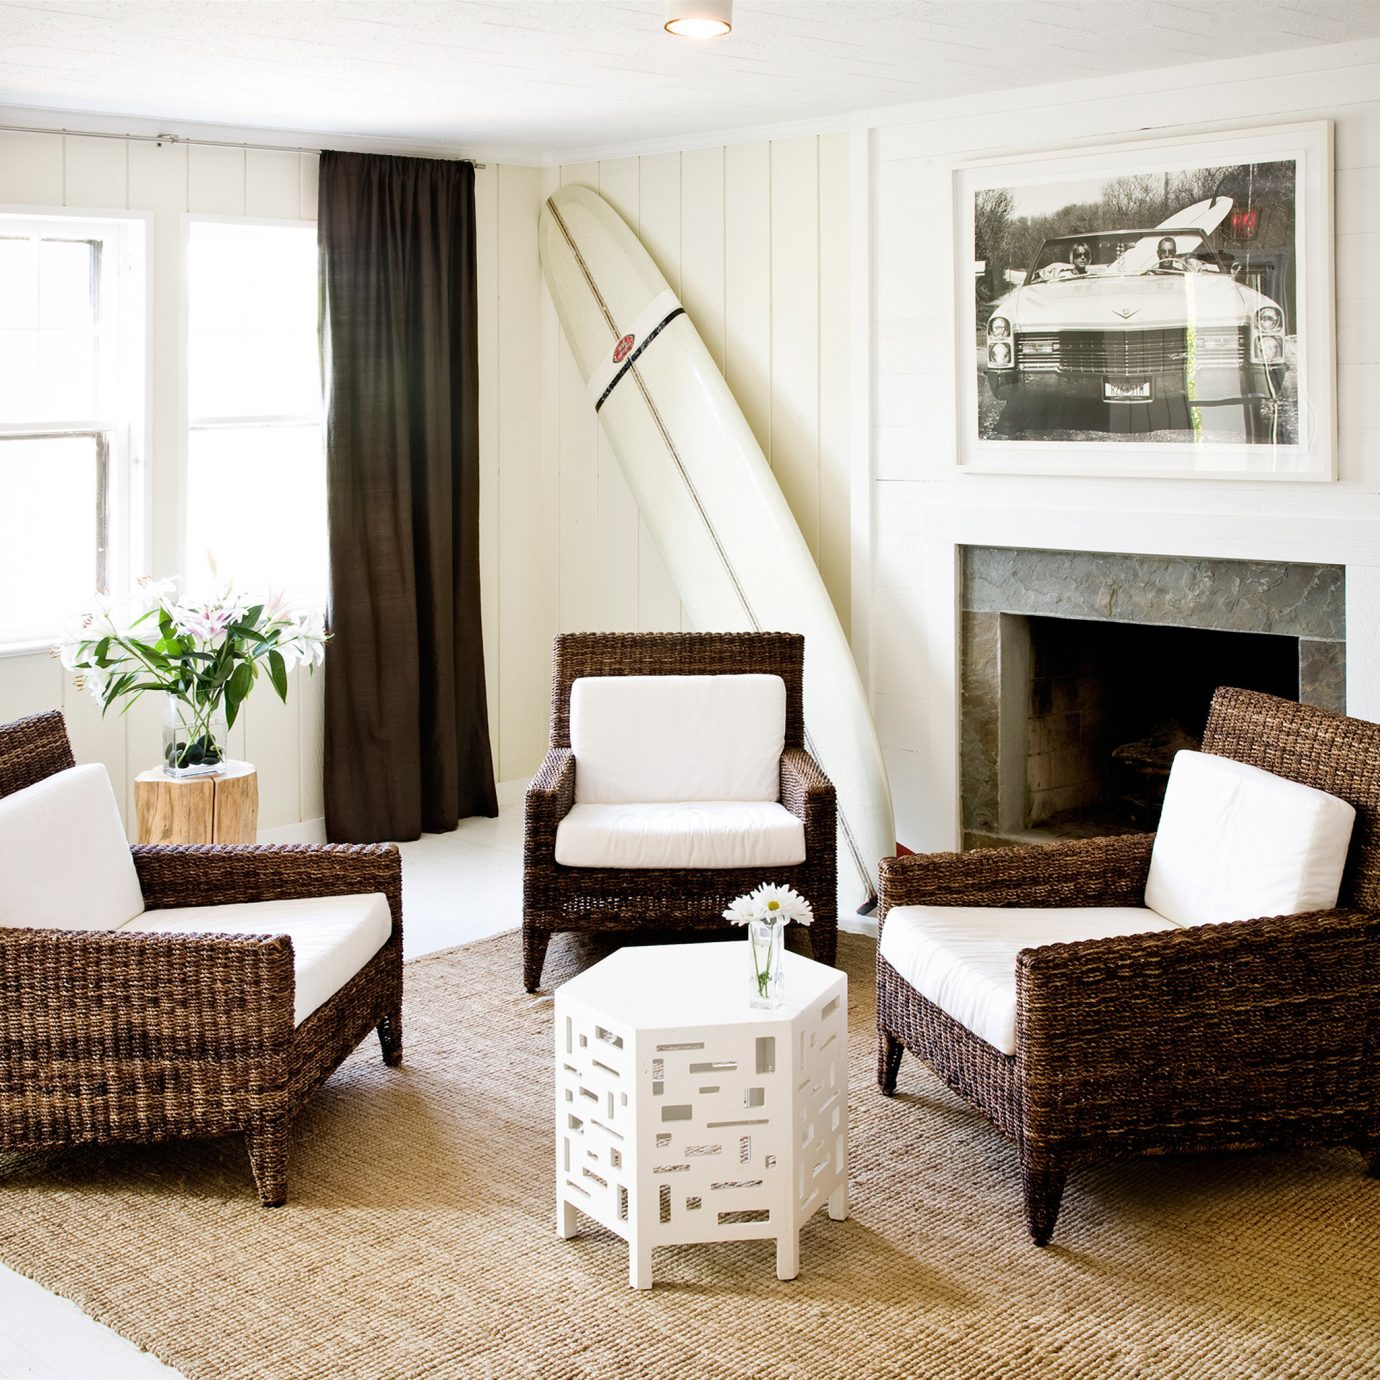 Beachfront Country Lounge Outdoor Activities Resort chair property living room Suite home white cottage condominium